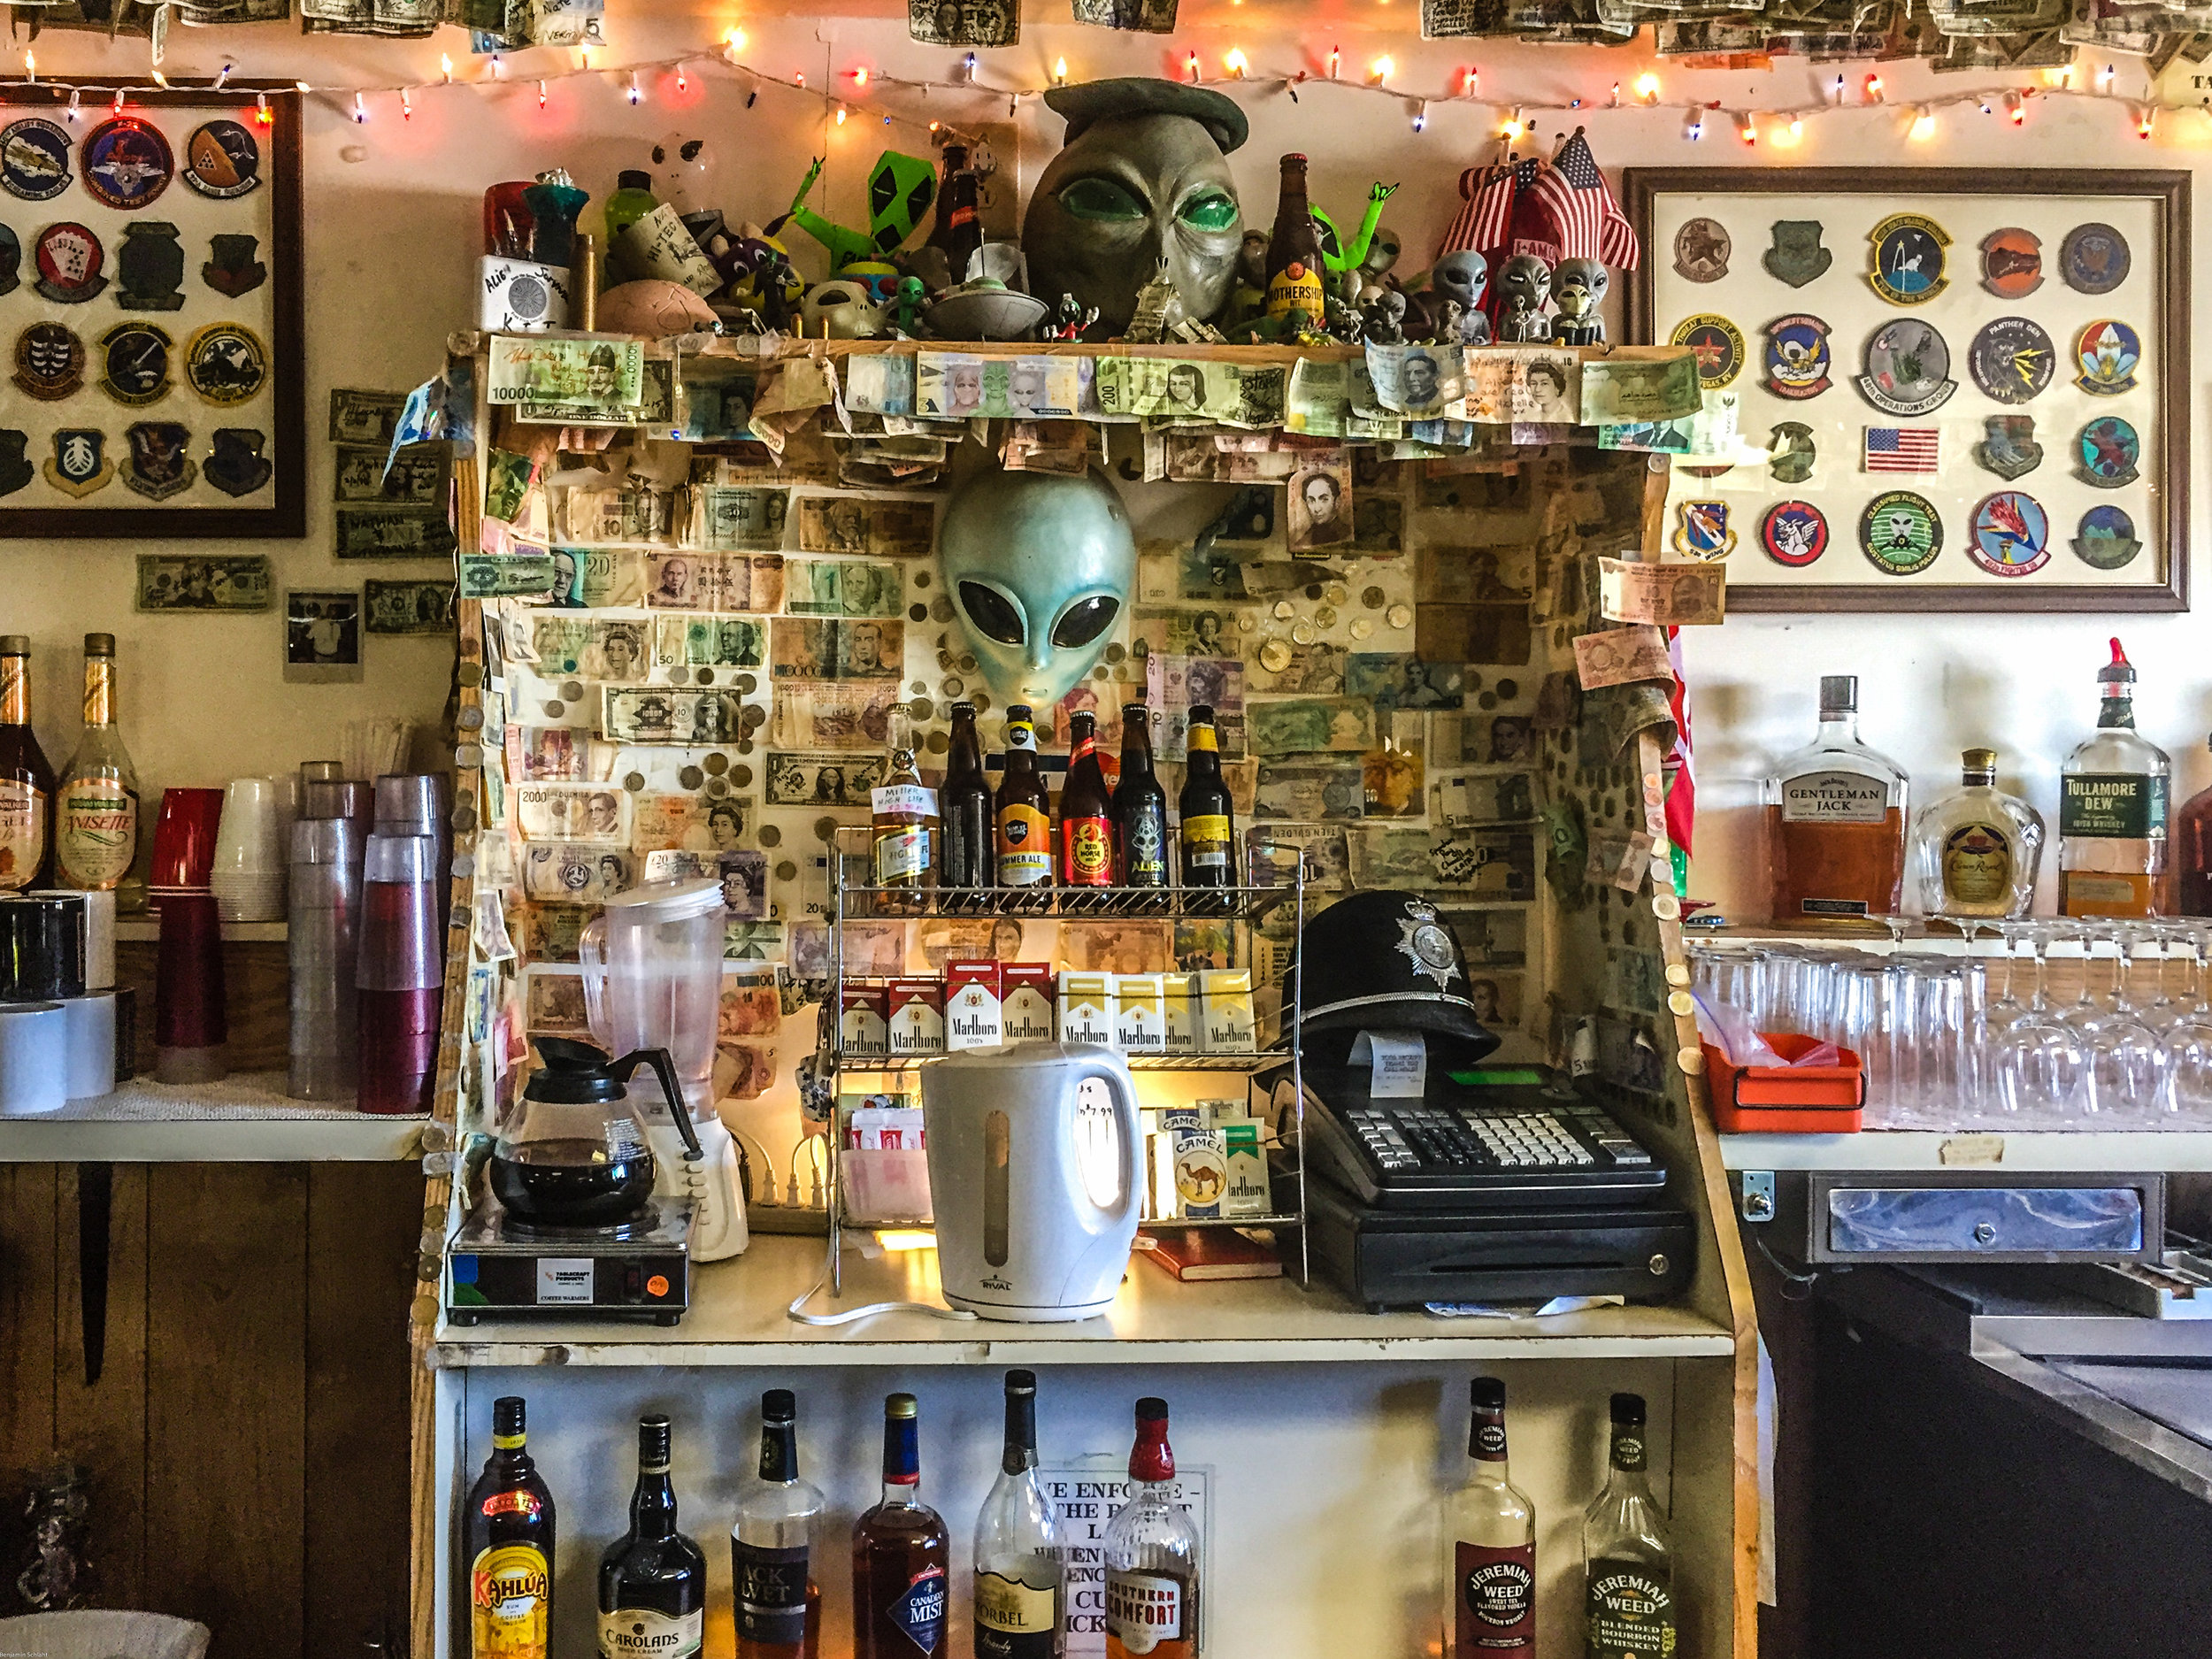 Behind the bar, full of aliens and character